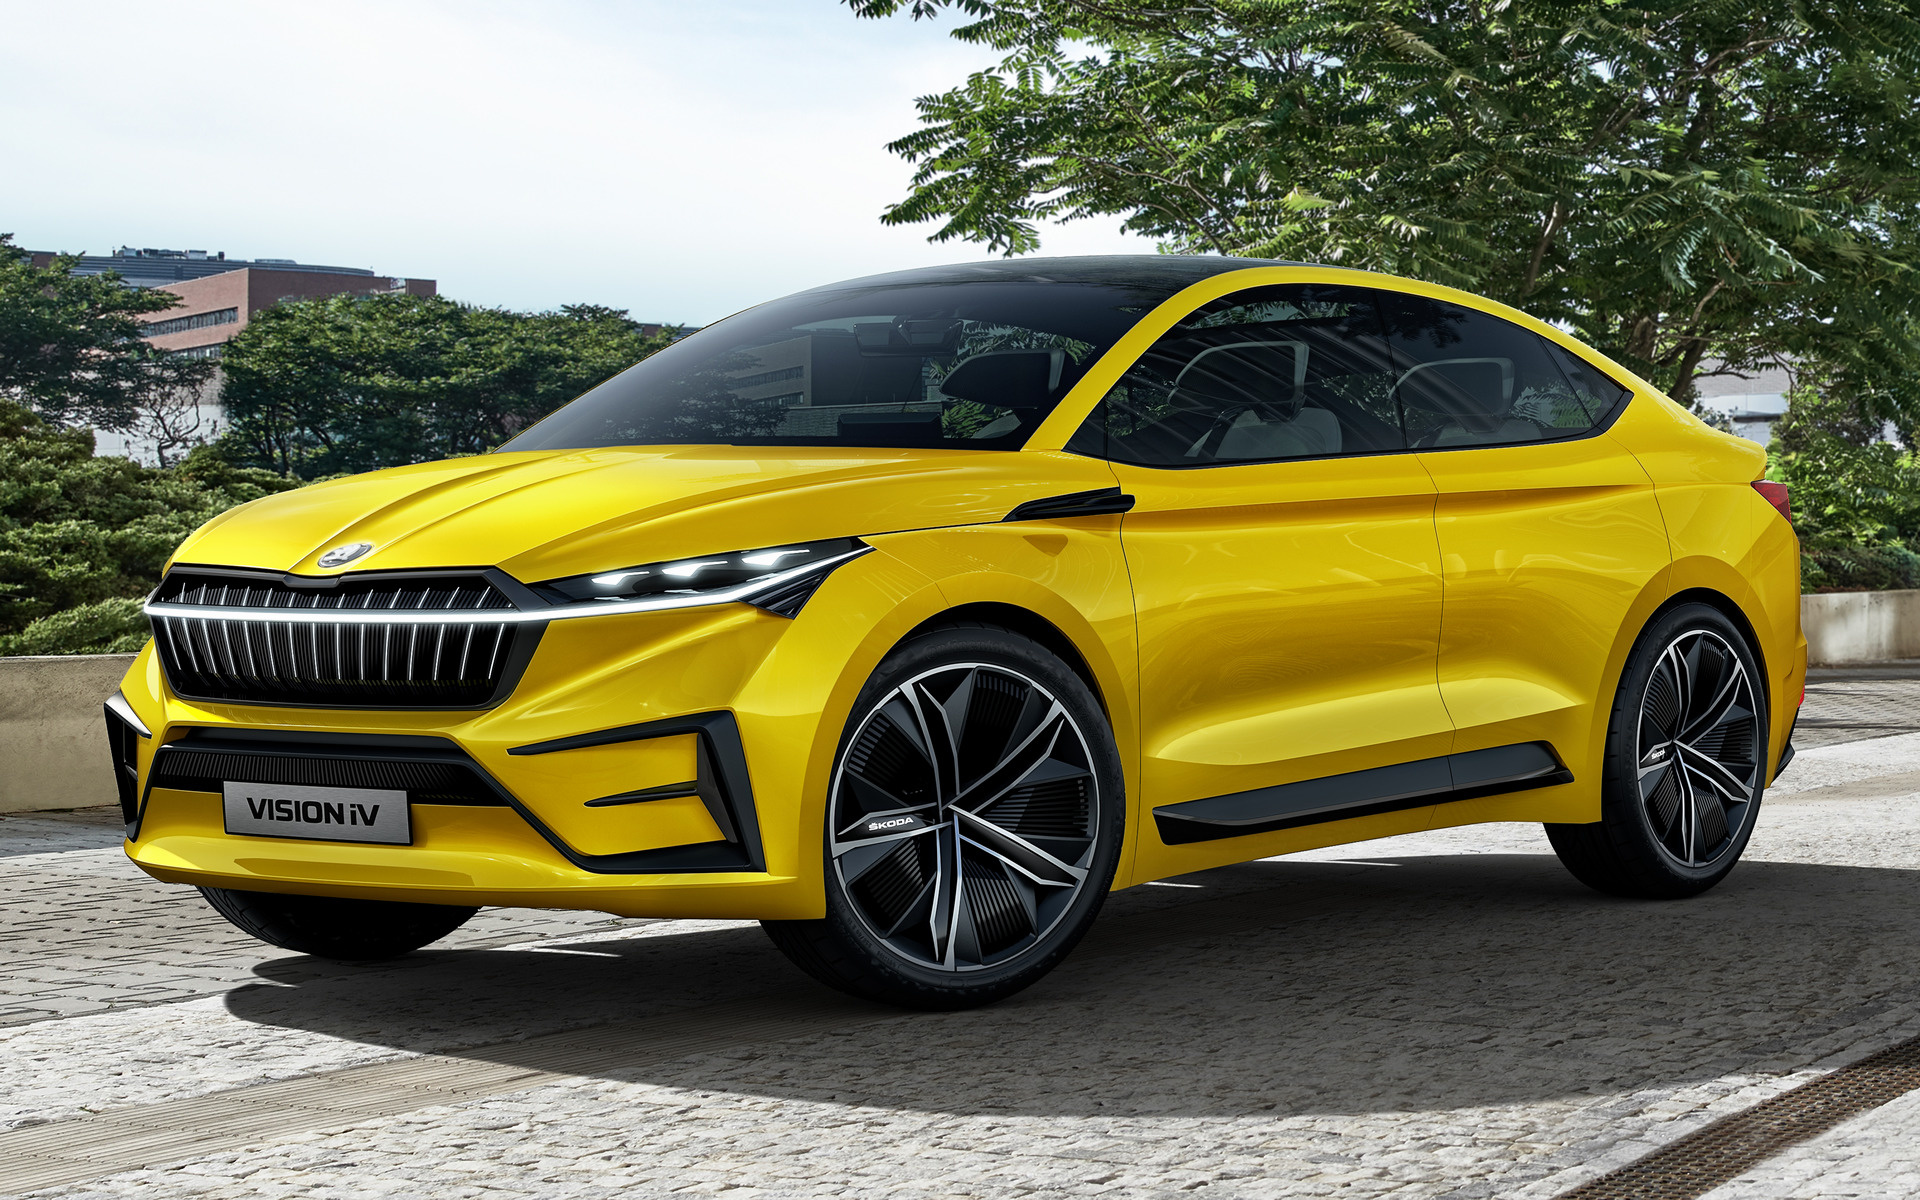 2019 Skoda Vision iV - Wallpapers and HD Images | Car Pixel